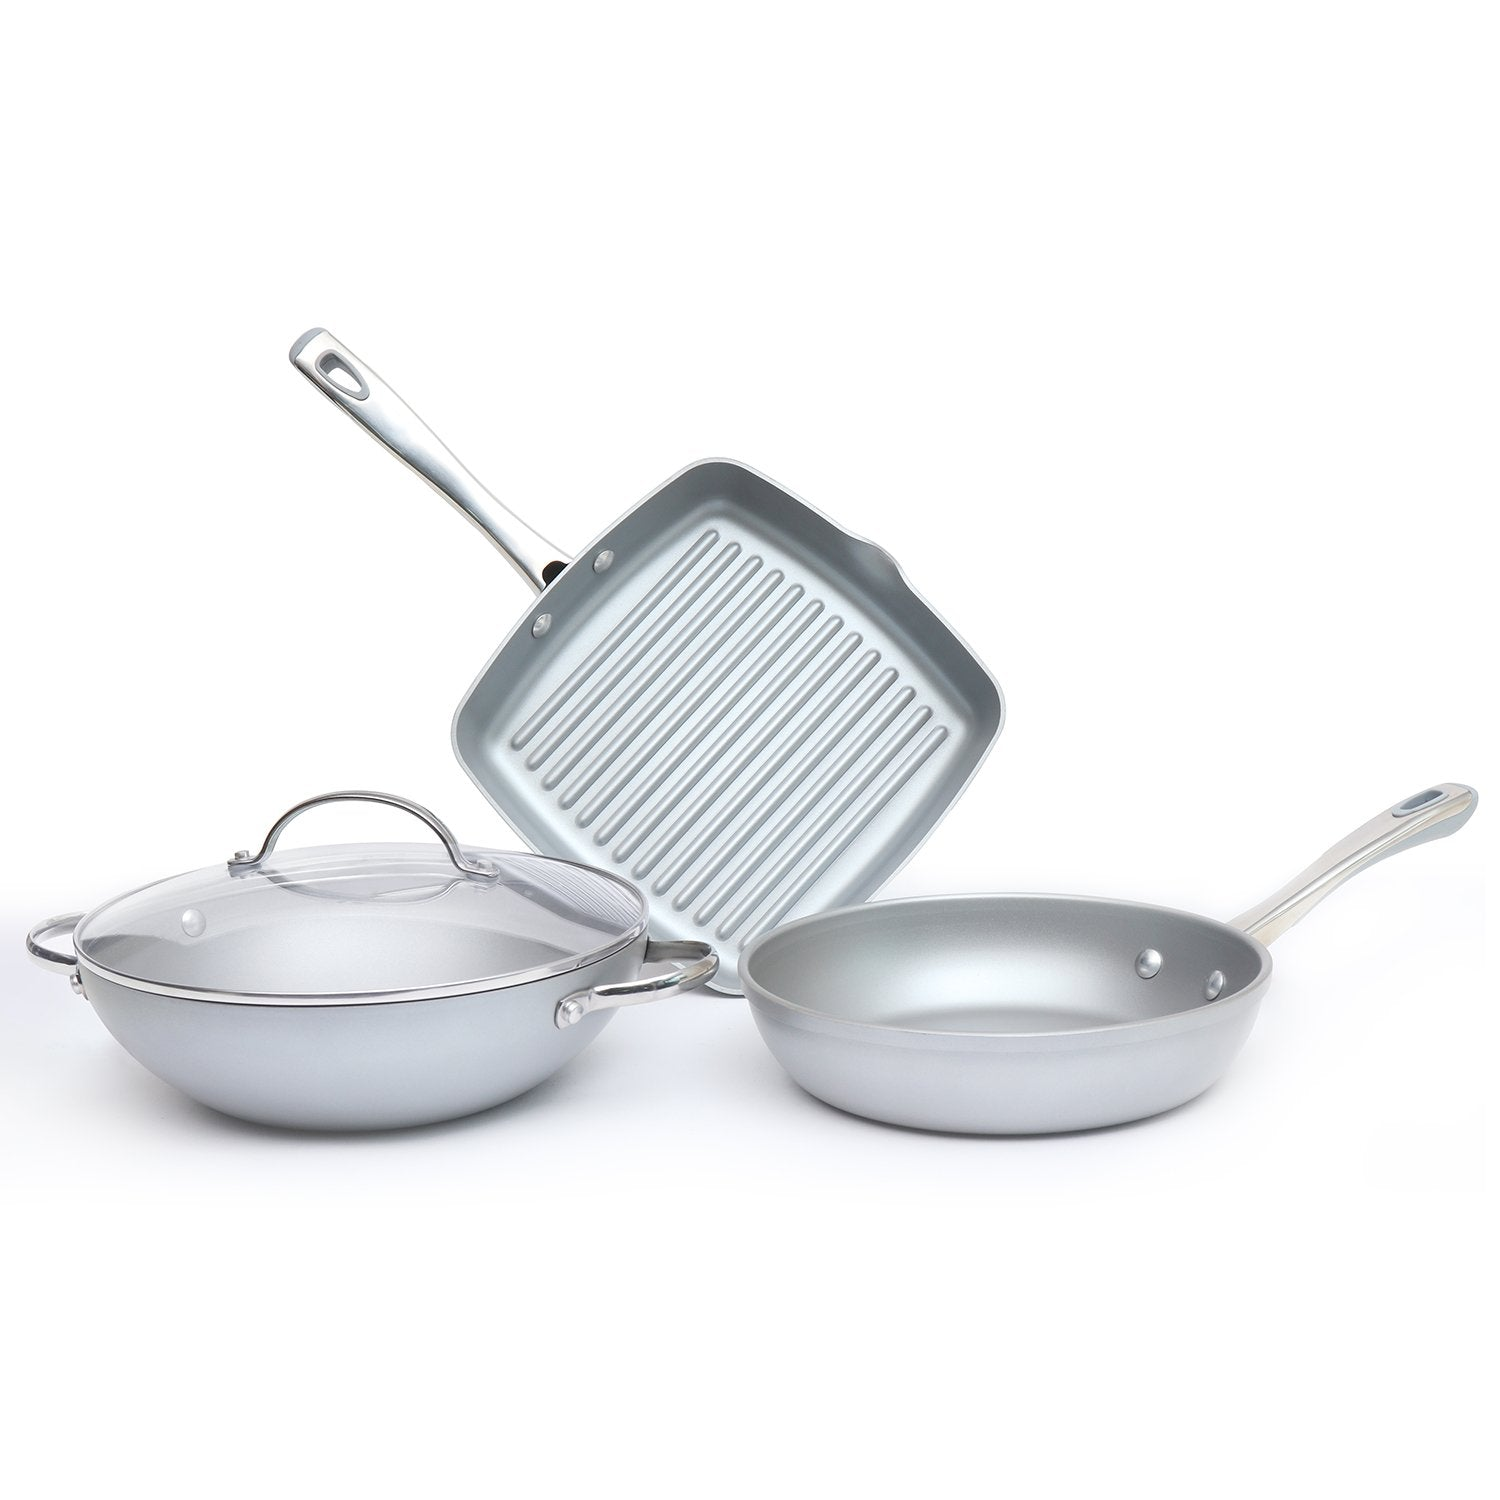 Meyer Prism Non-stick Rapido Kitchen Diva